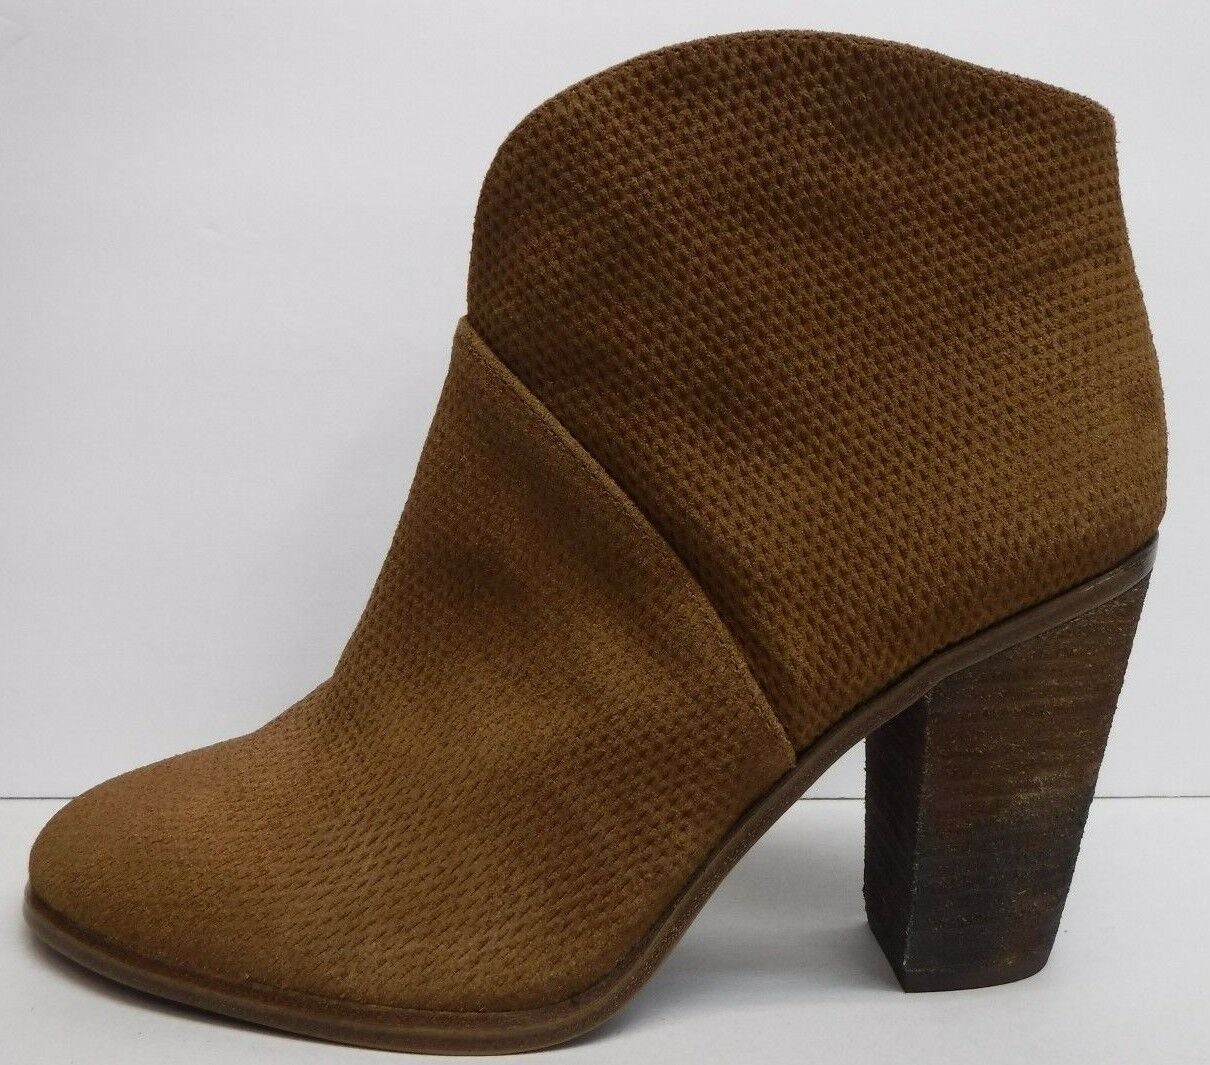 Vince Camuto Size 10 Brown Leather Ankle Boots New Womens Shoes